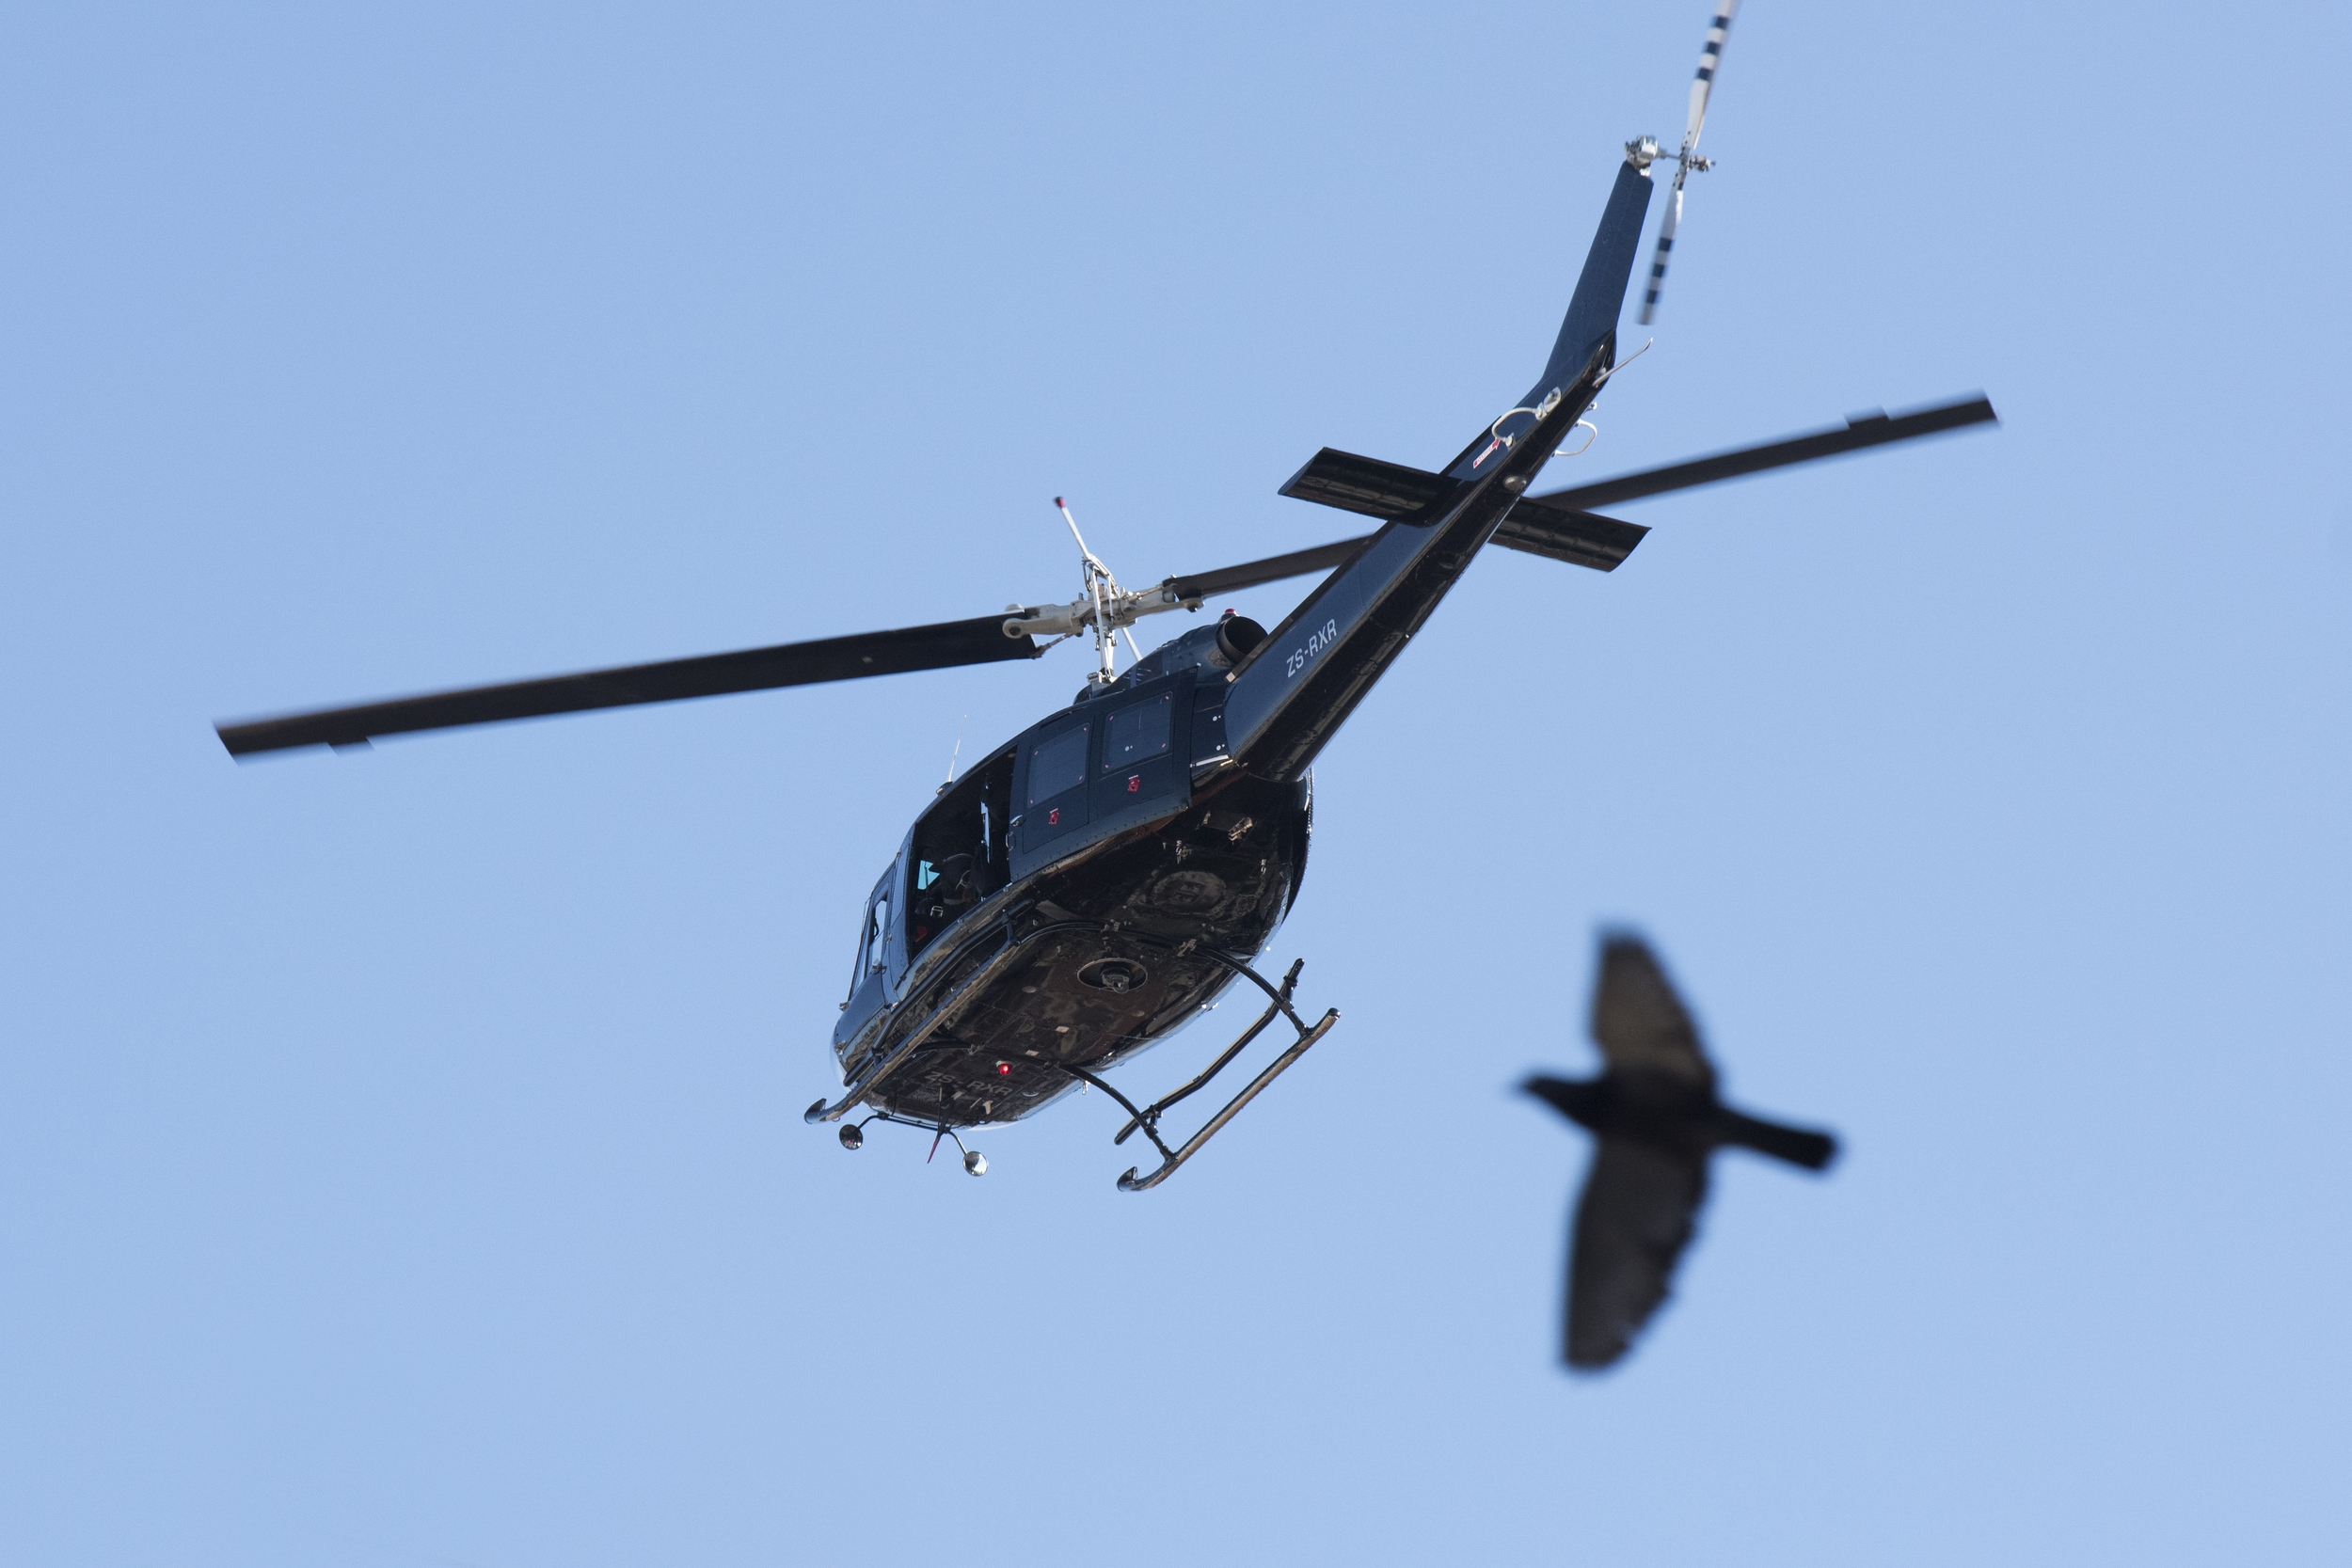 The helicopter used by the baddies, lucky as a bird flew by!